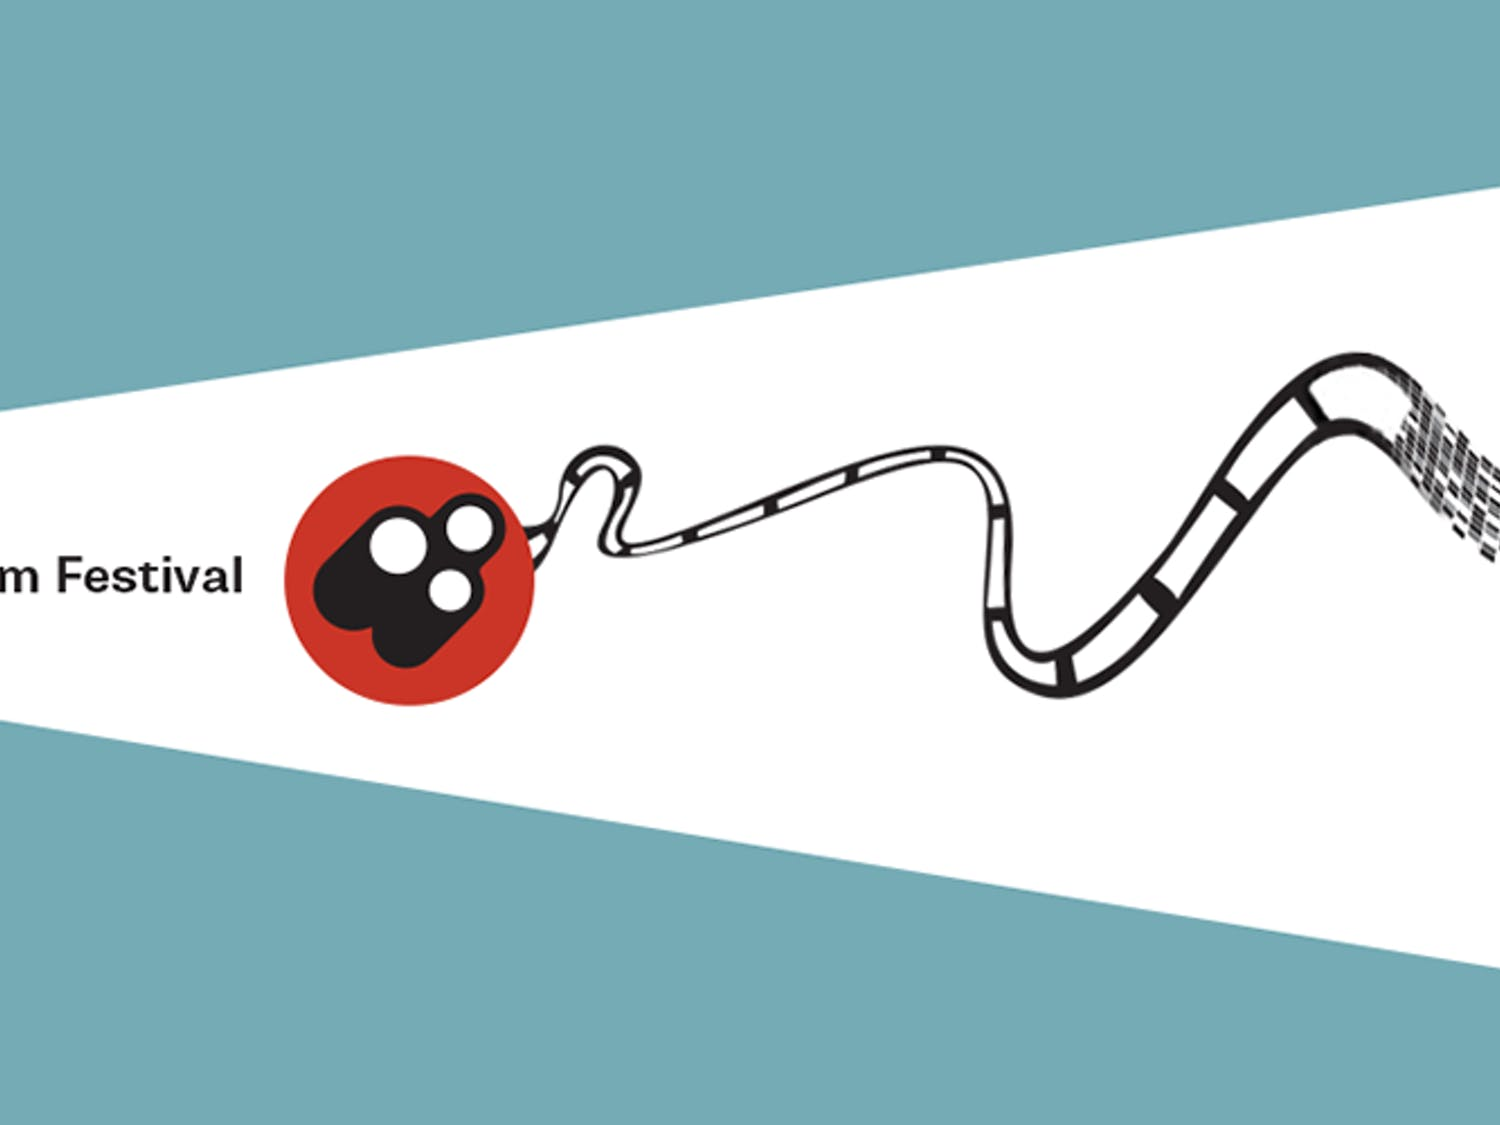 Wisconsin Film Festival begins April 4 to April 11, showcasing a wide berth of films across UW-Madison and surrounding community.